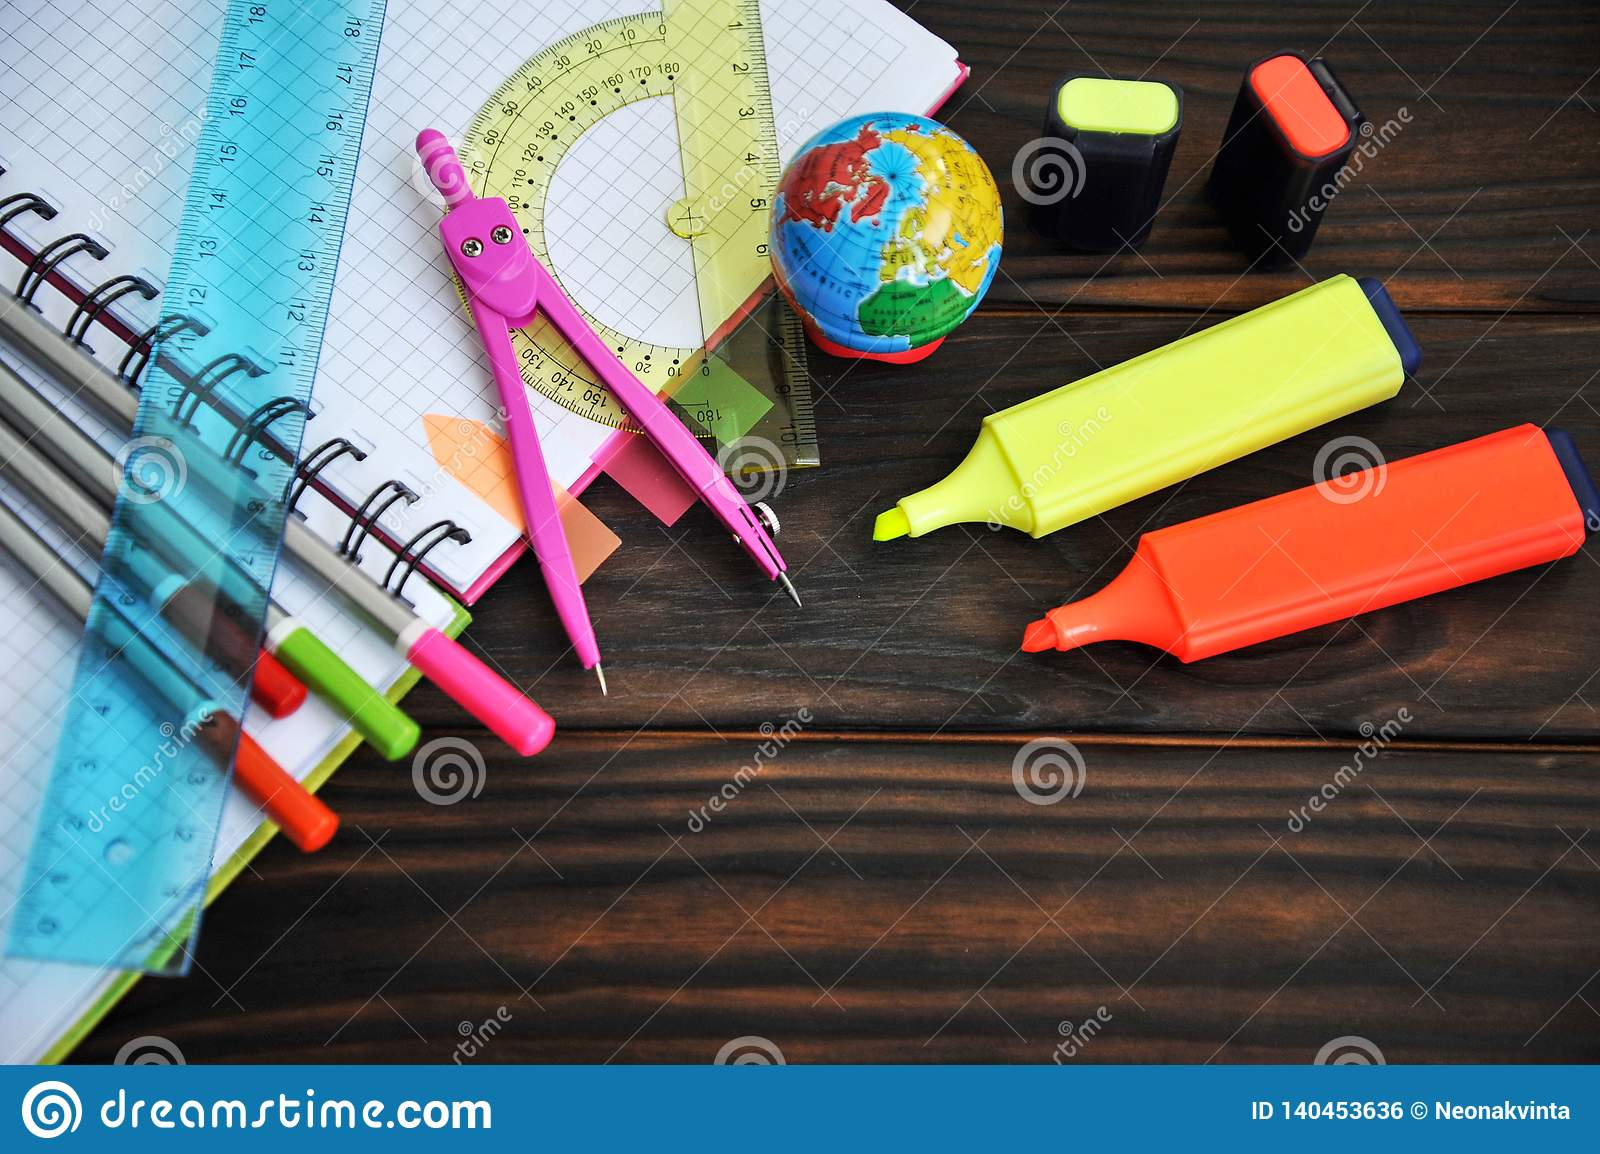 Stationery scattered on a notebook lying on a wooden table